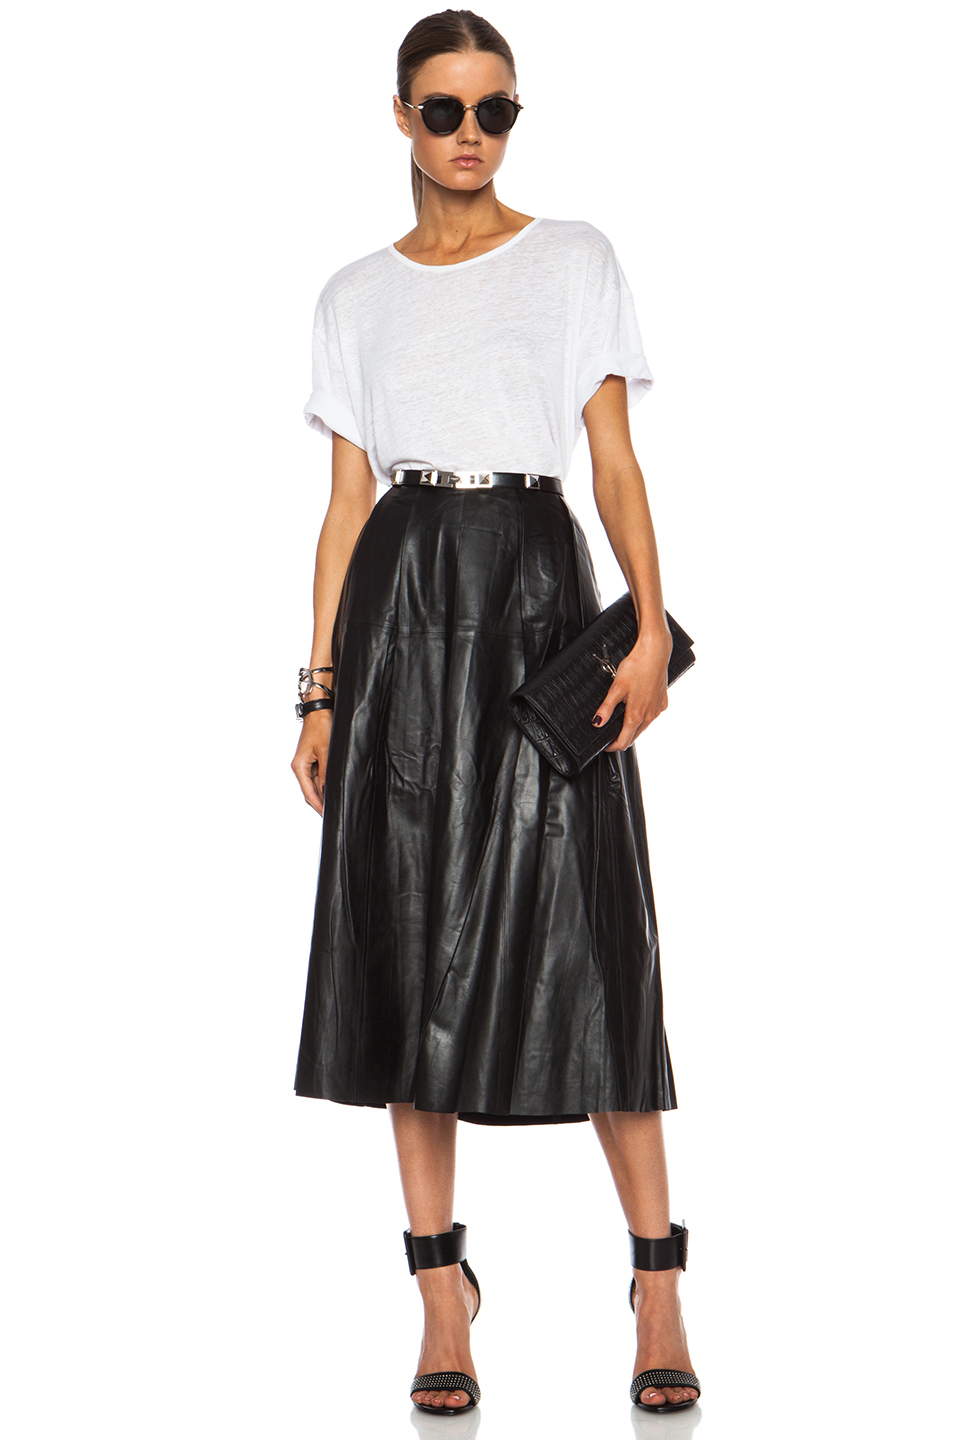 Leather skirt 26 in black